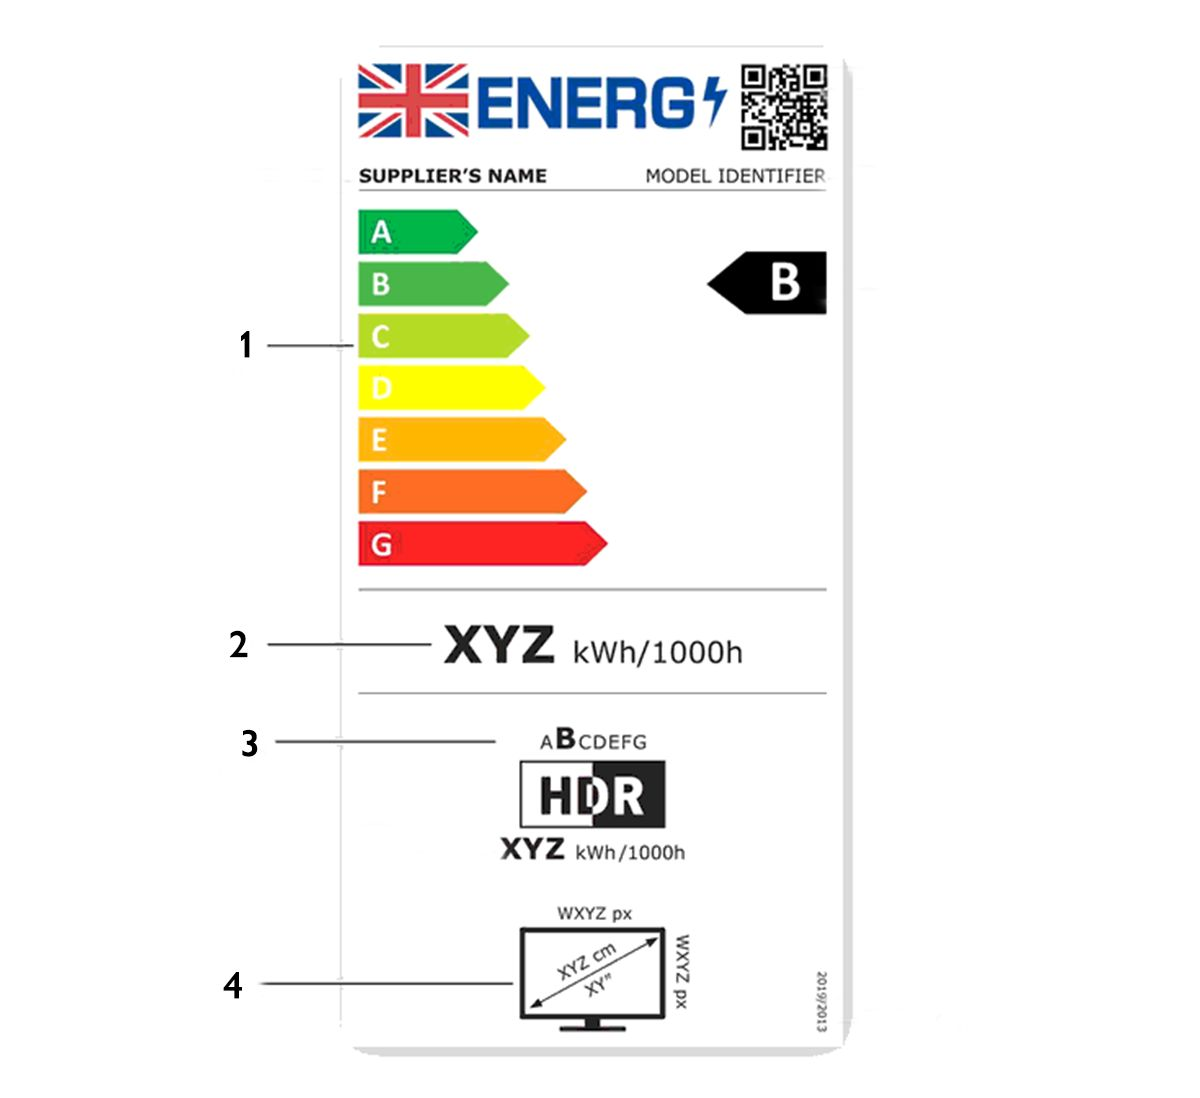 Televisions energy label